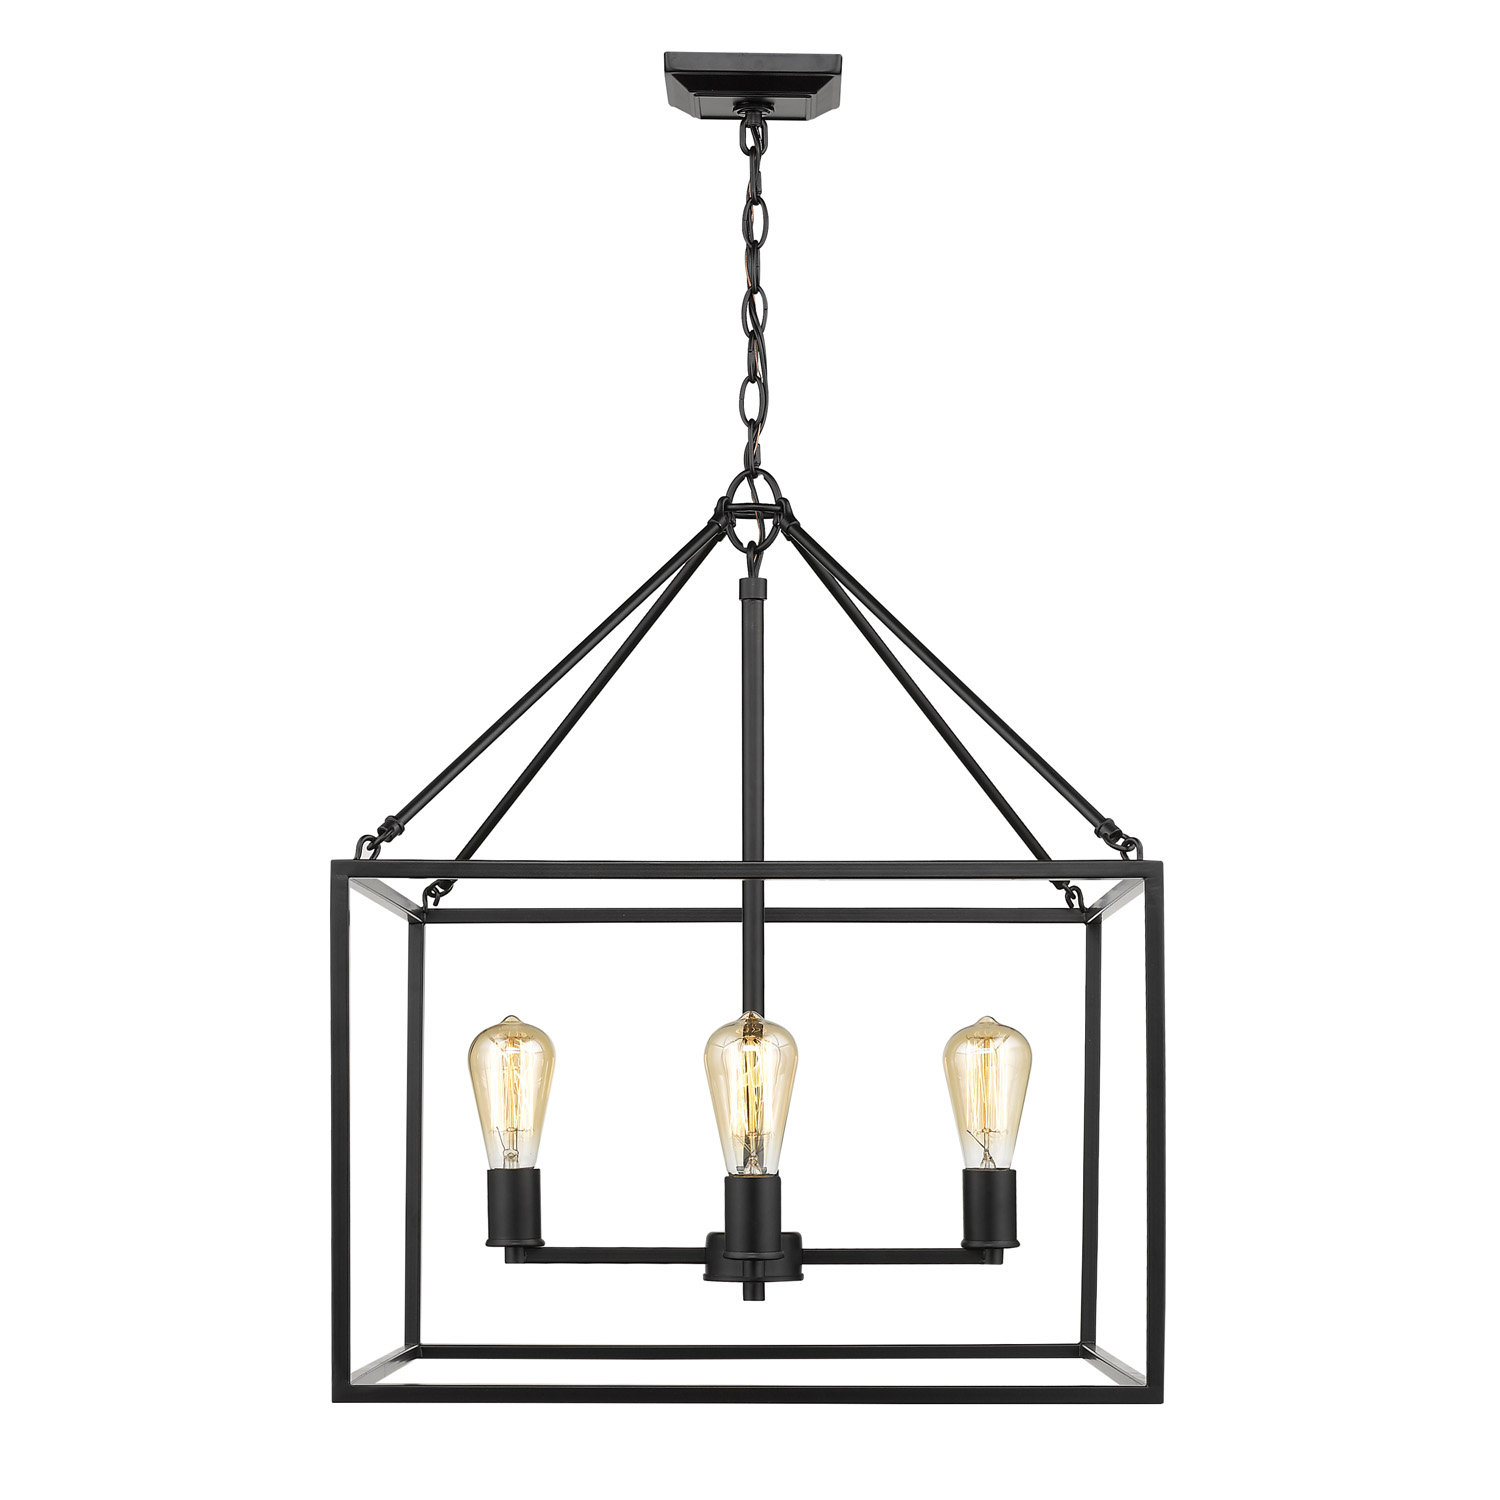 Zabel 4 Light Lantern Square / Rectangle Pendant With Regard To Odie 8 Light Lantern Square / Rectangle Pendants (View 30 of 30)